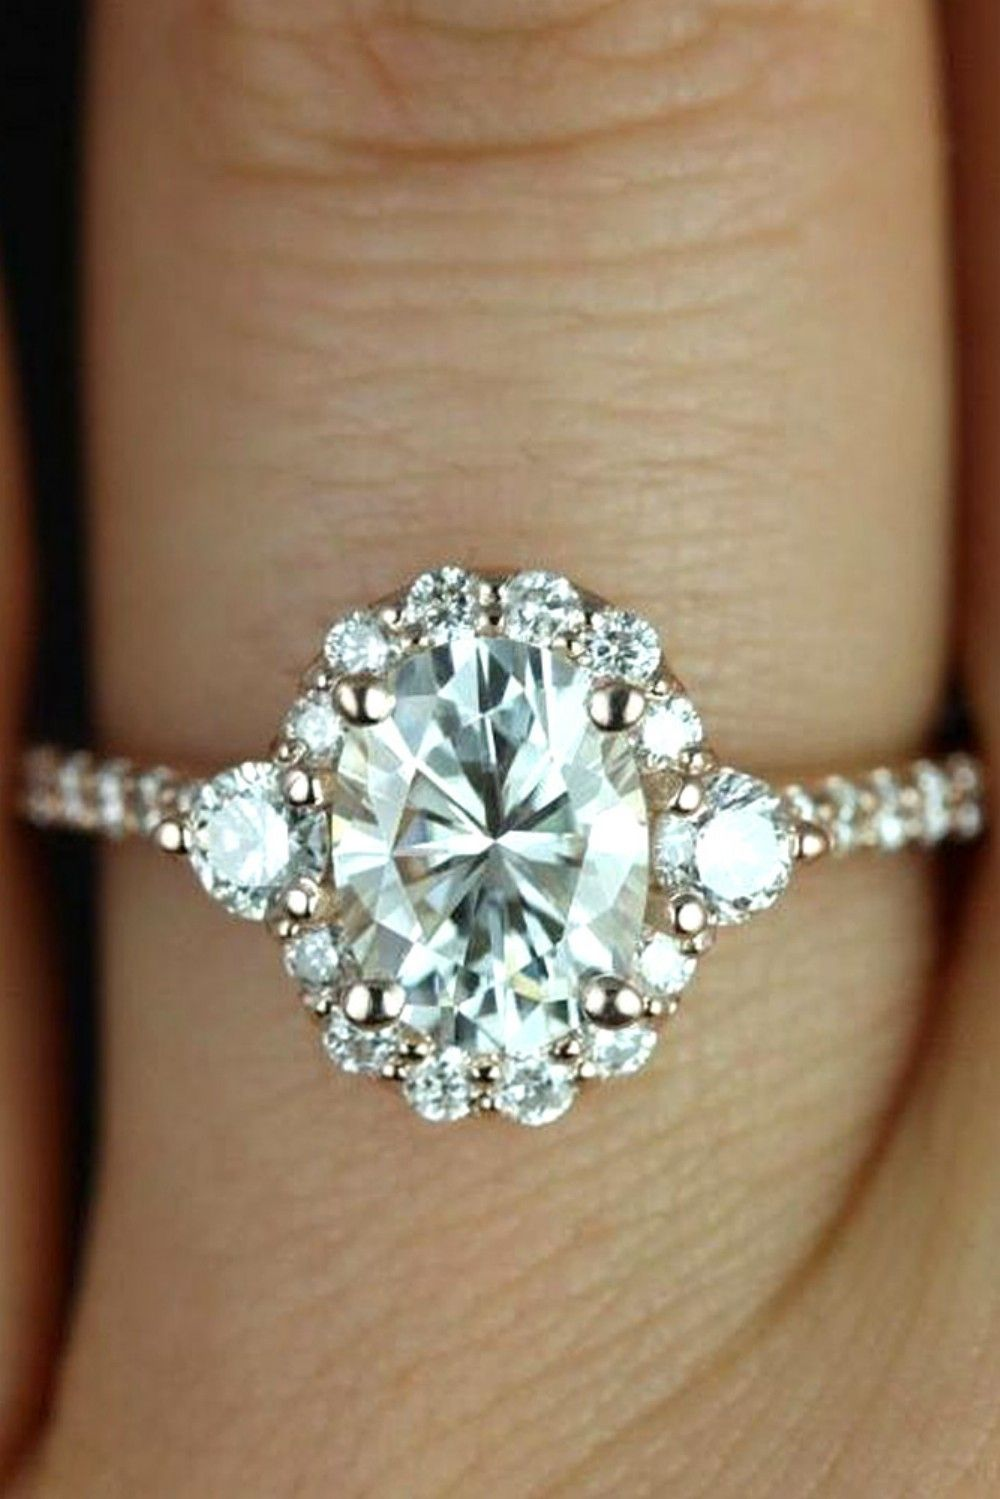 35 Engagement Ring Ideas To Make A Perfect Pair: Country Wedding Ring Ideas At Reisefeber.org